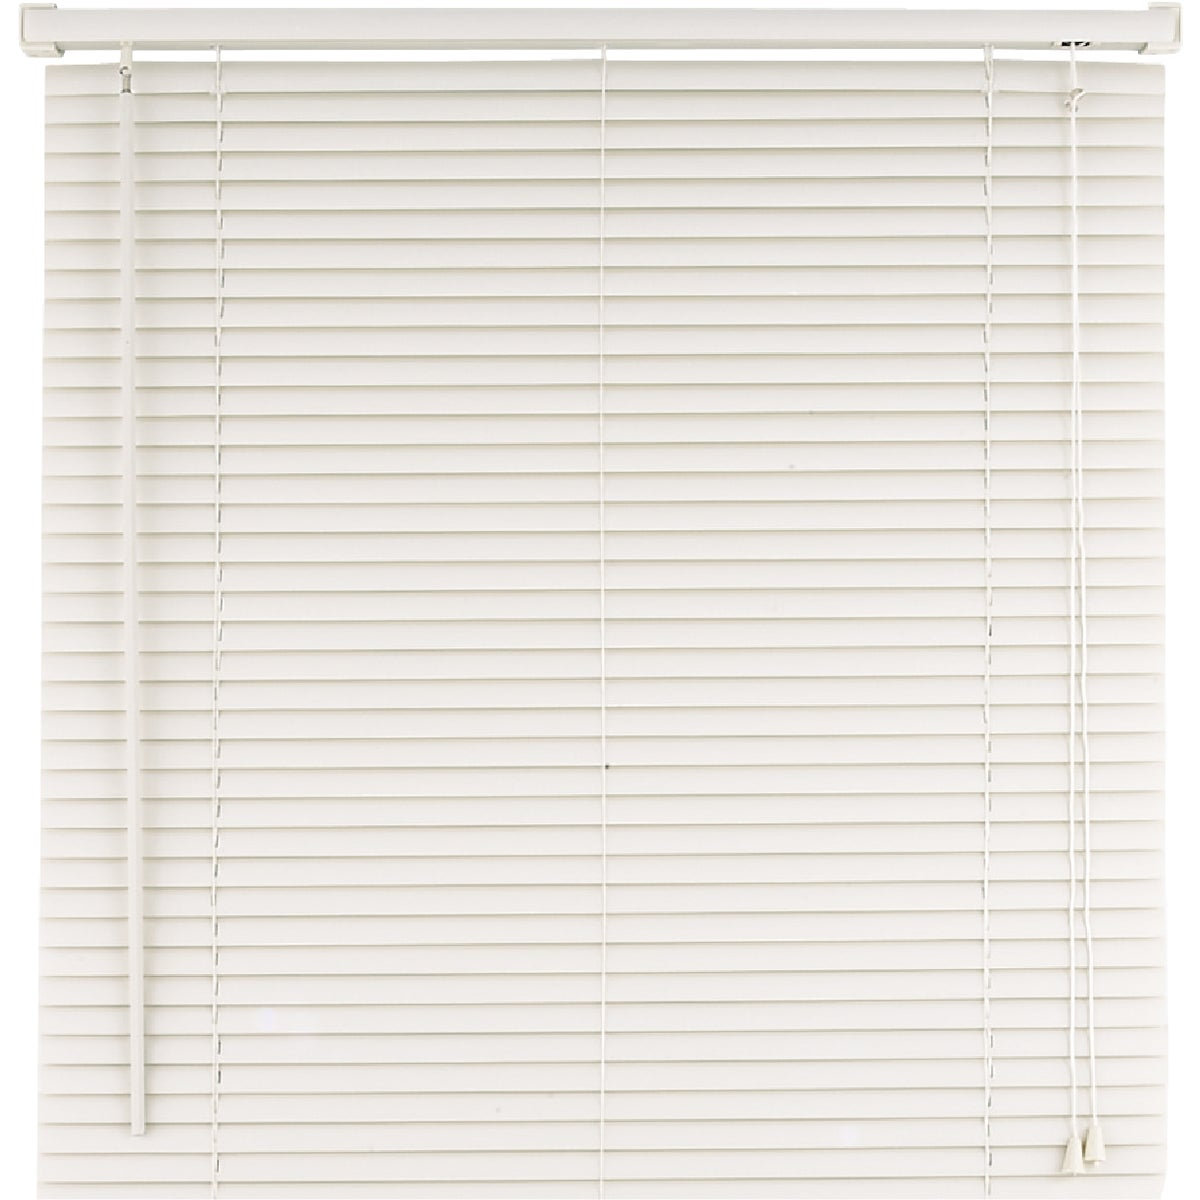 32X64 WHITE MINI BLIND - 628011 by Lotus Wind Incom